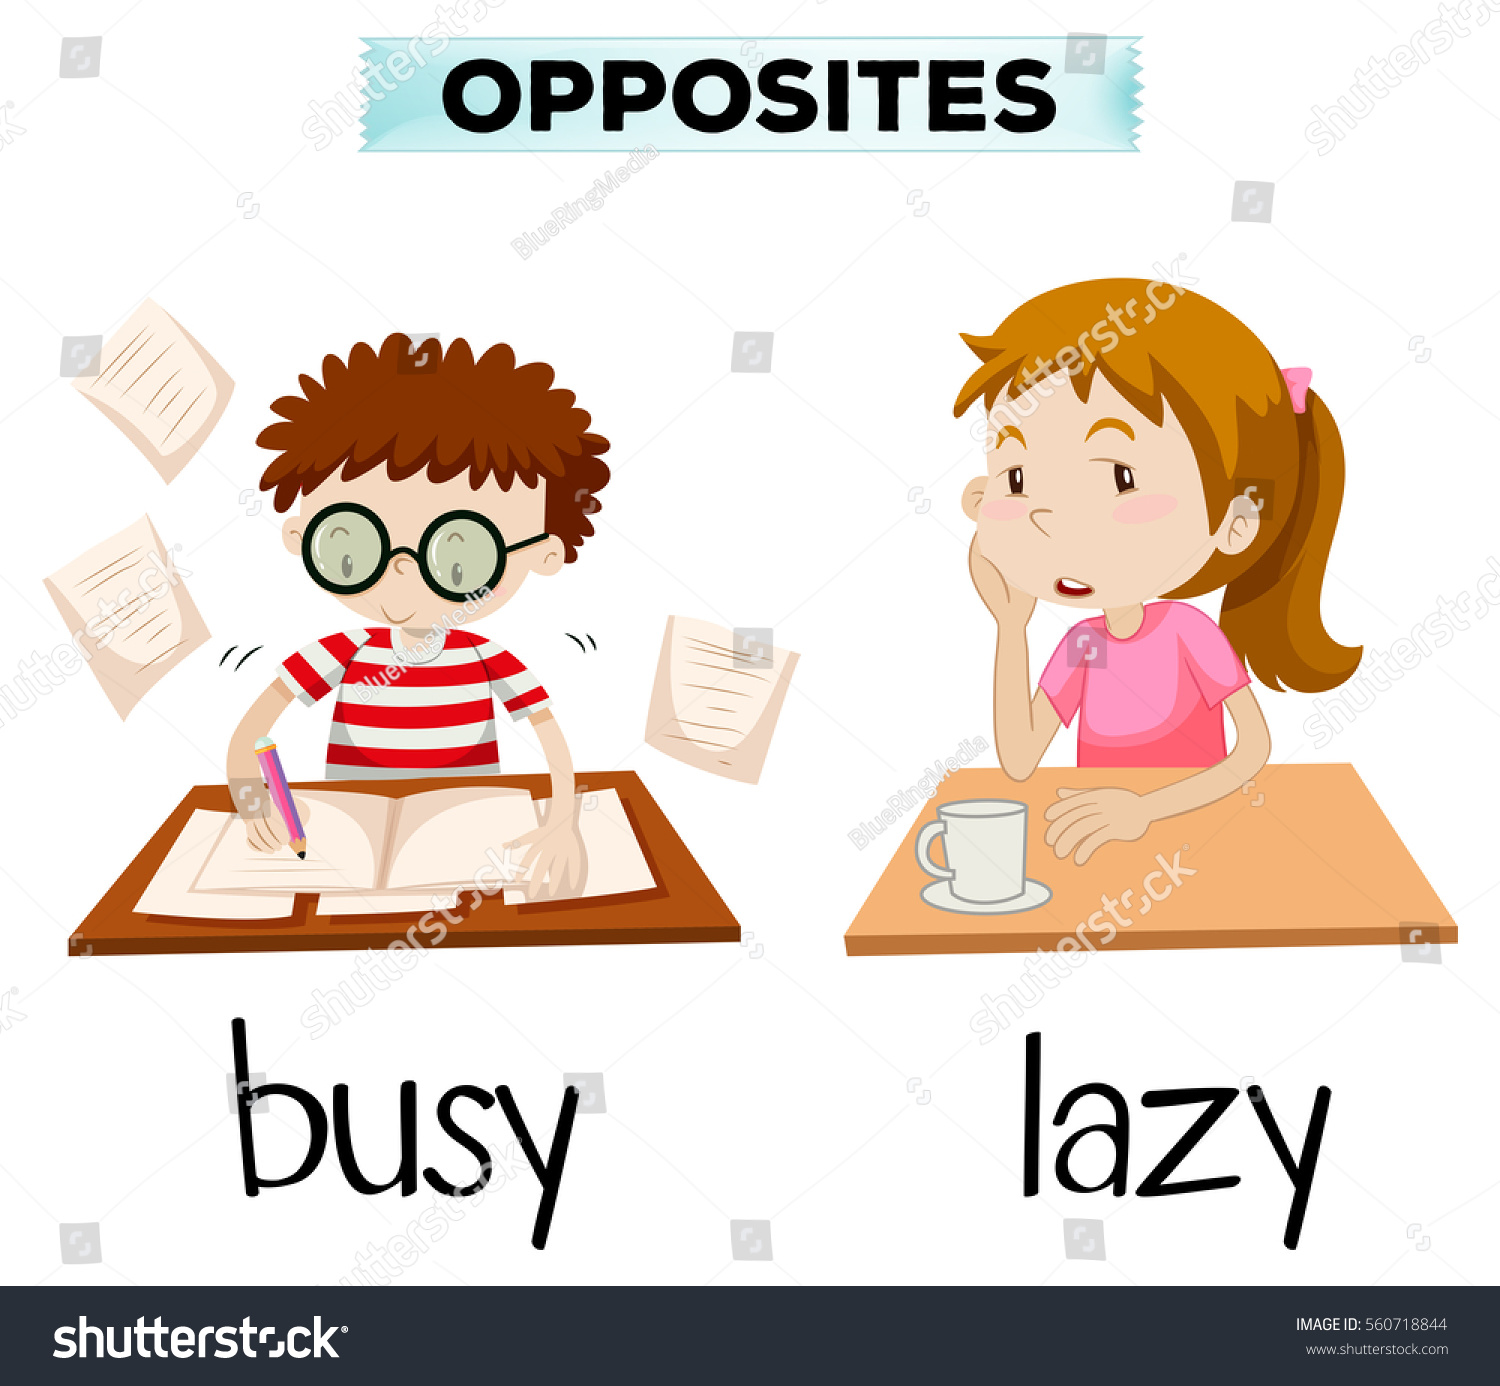 Opposite Words Busy Lazy Illustration Stock-vrgrafik 560718844 ...